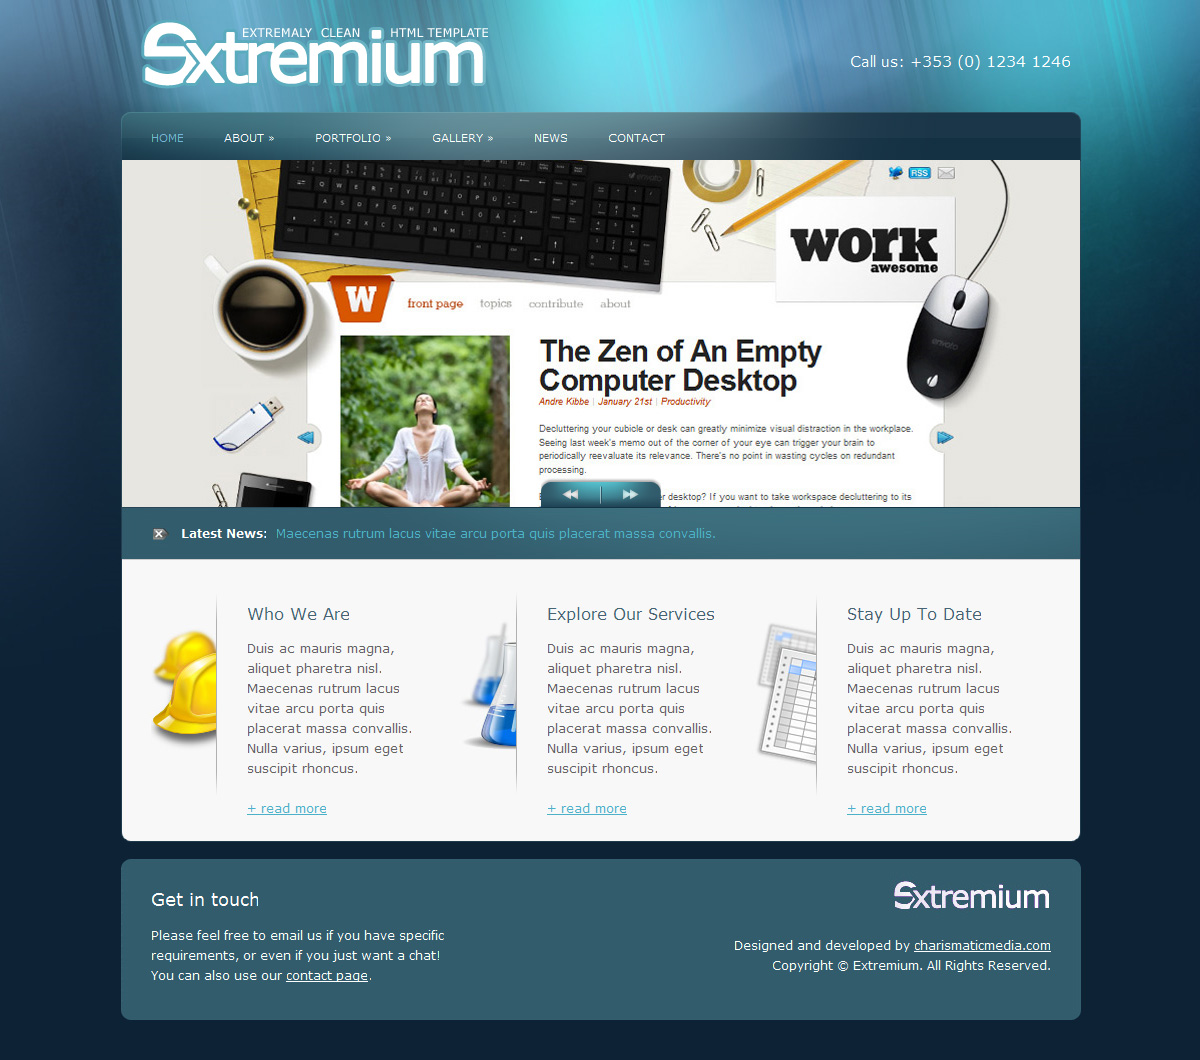 Extremium - 6 in 1 Extremely Clean HTML Template - Extremium Home Page - Blue